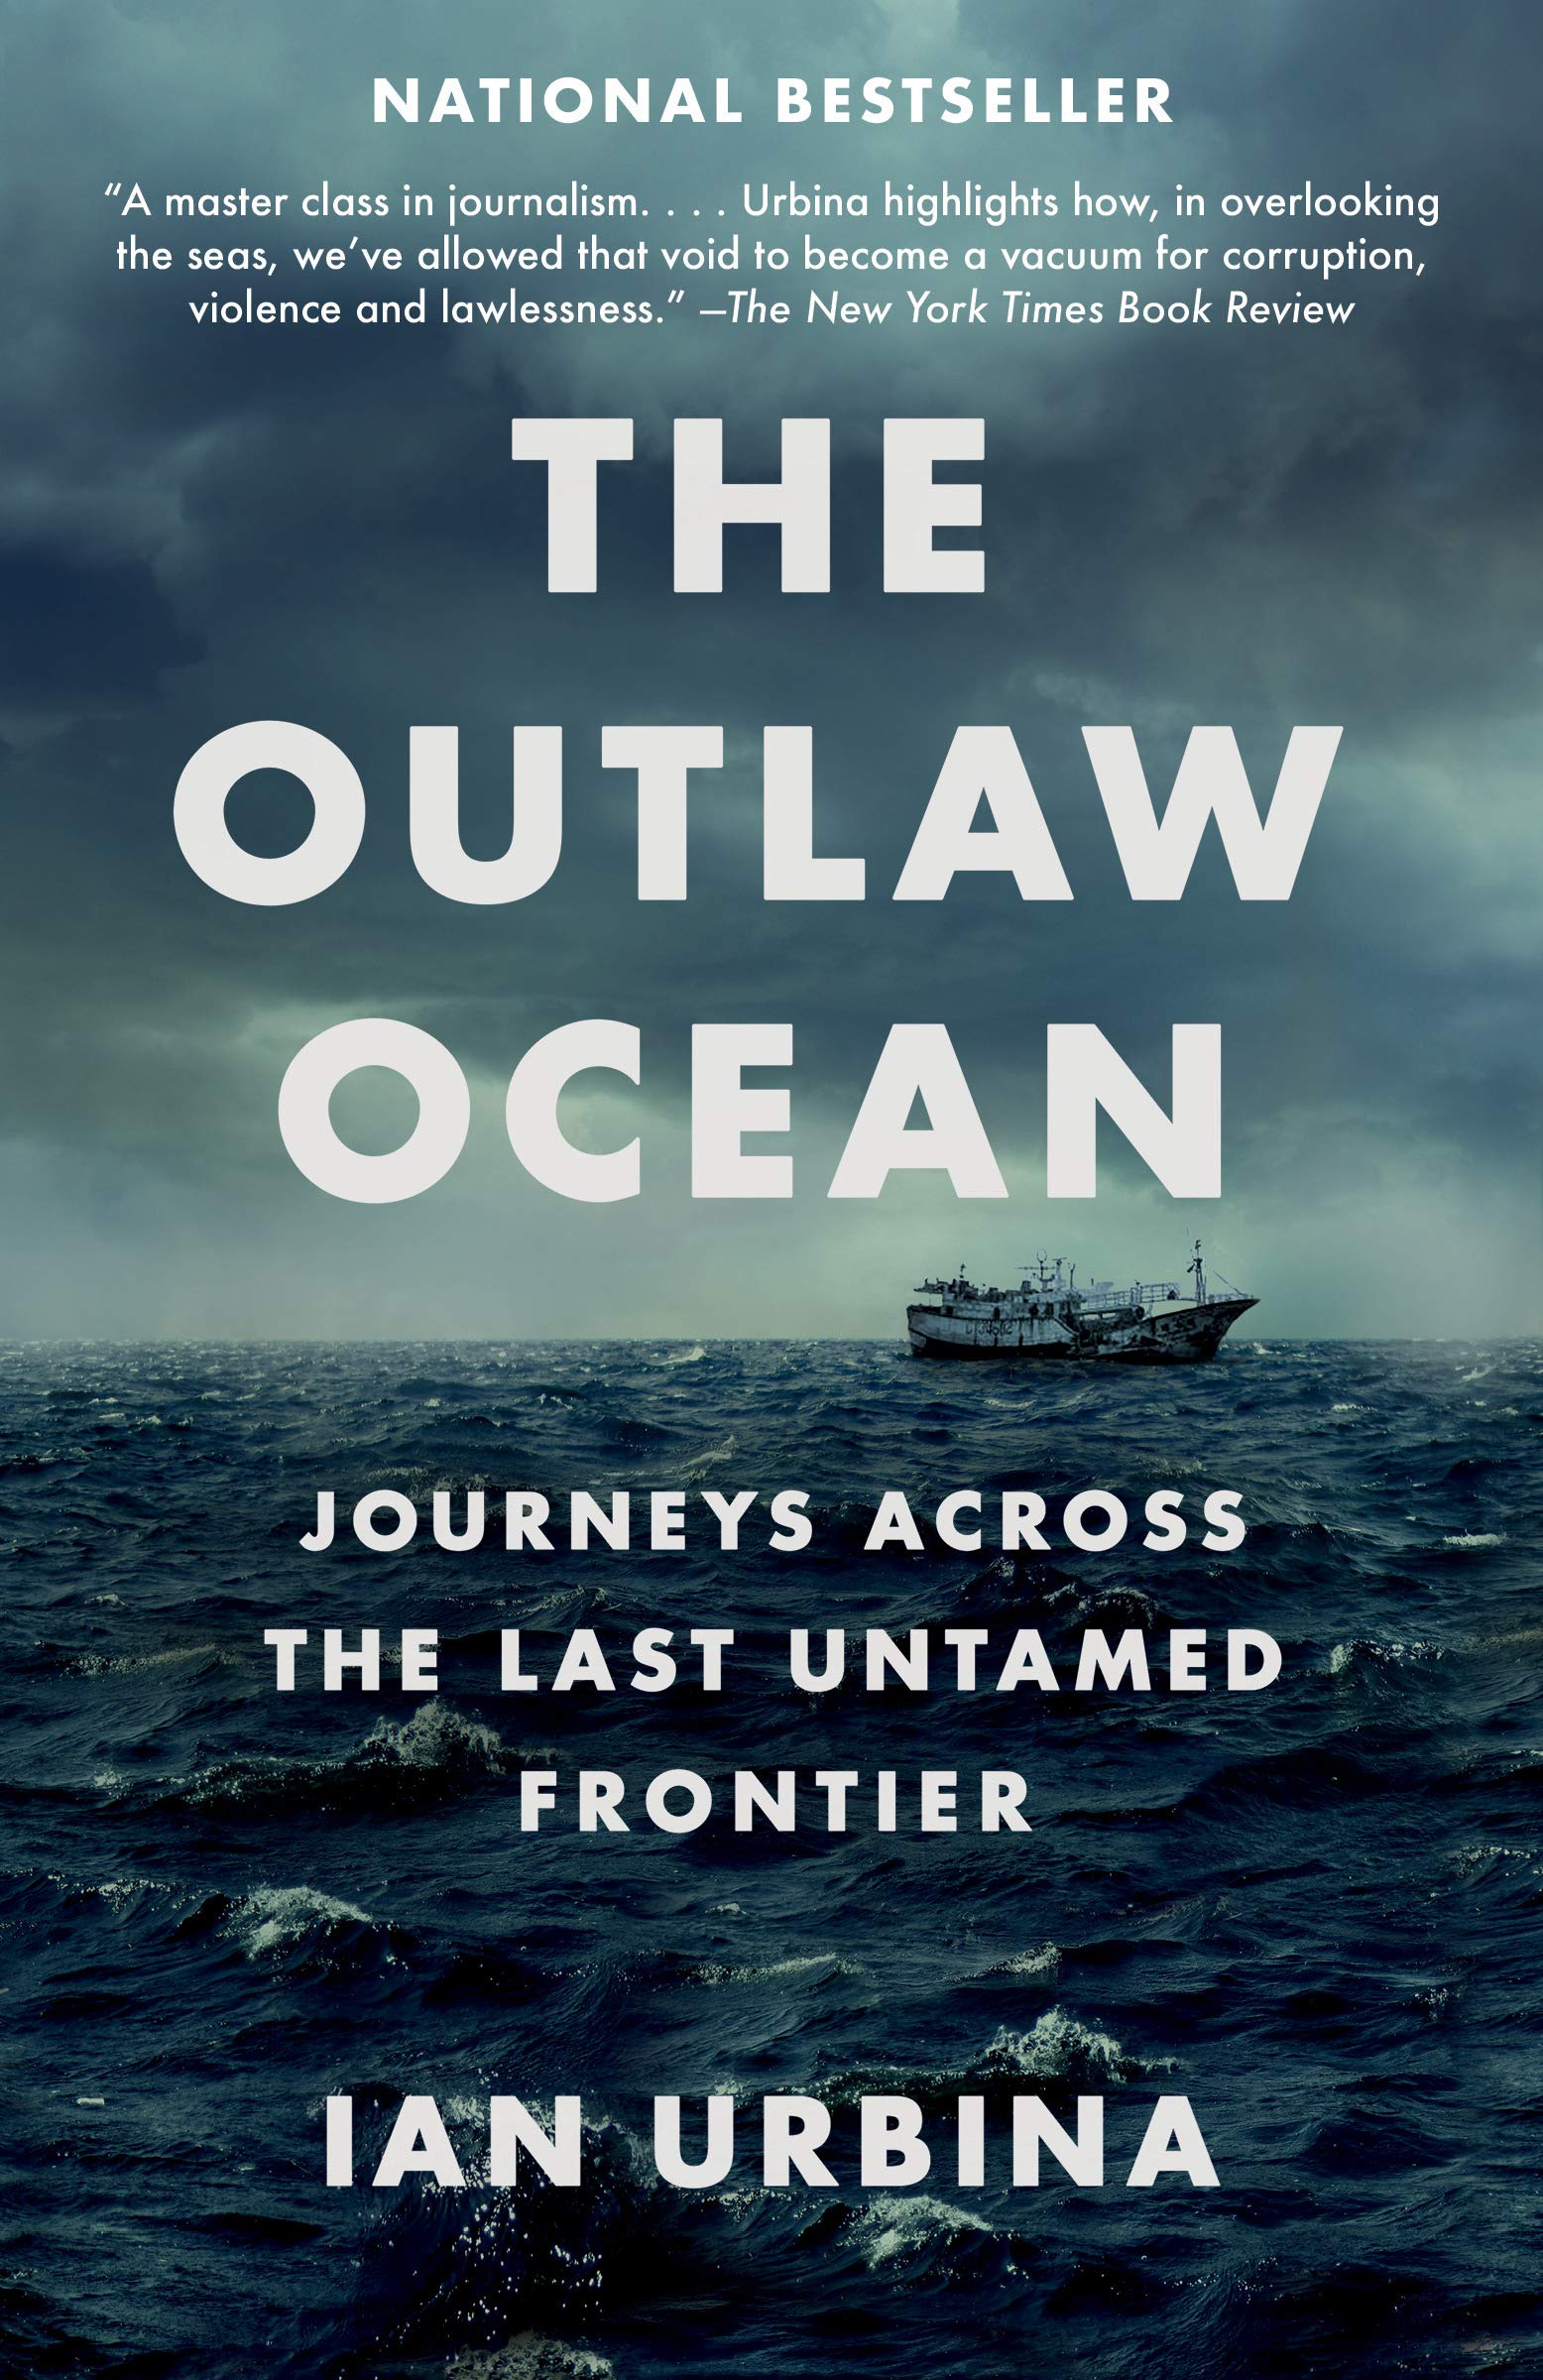 Image OfThe Outlaw Ocean: Journeys Across The Last Untamed Frontier